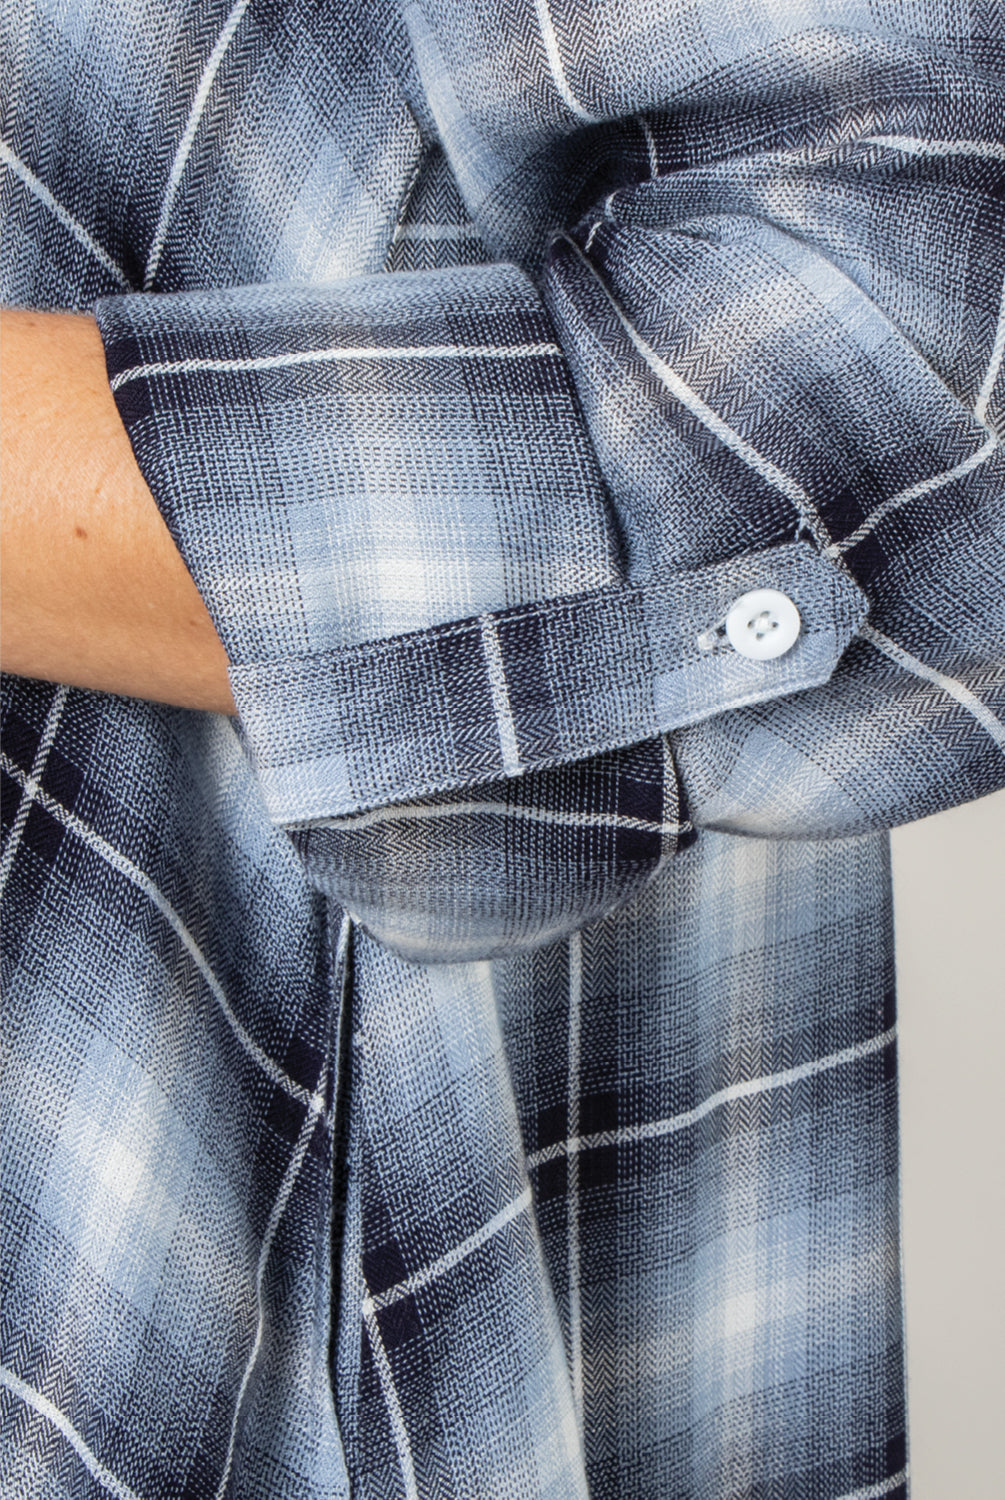 PL Plaid Trapeze Dress - Model (Closeup)